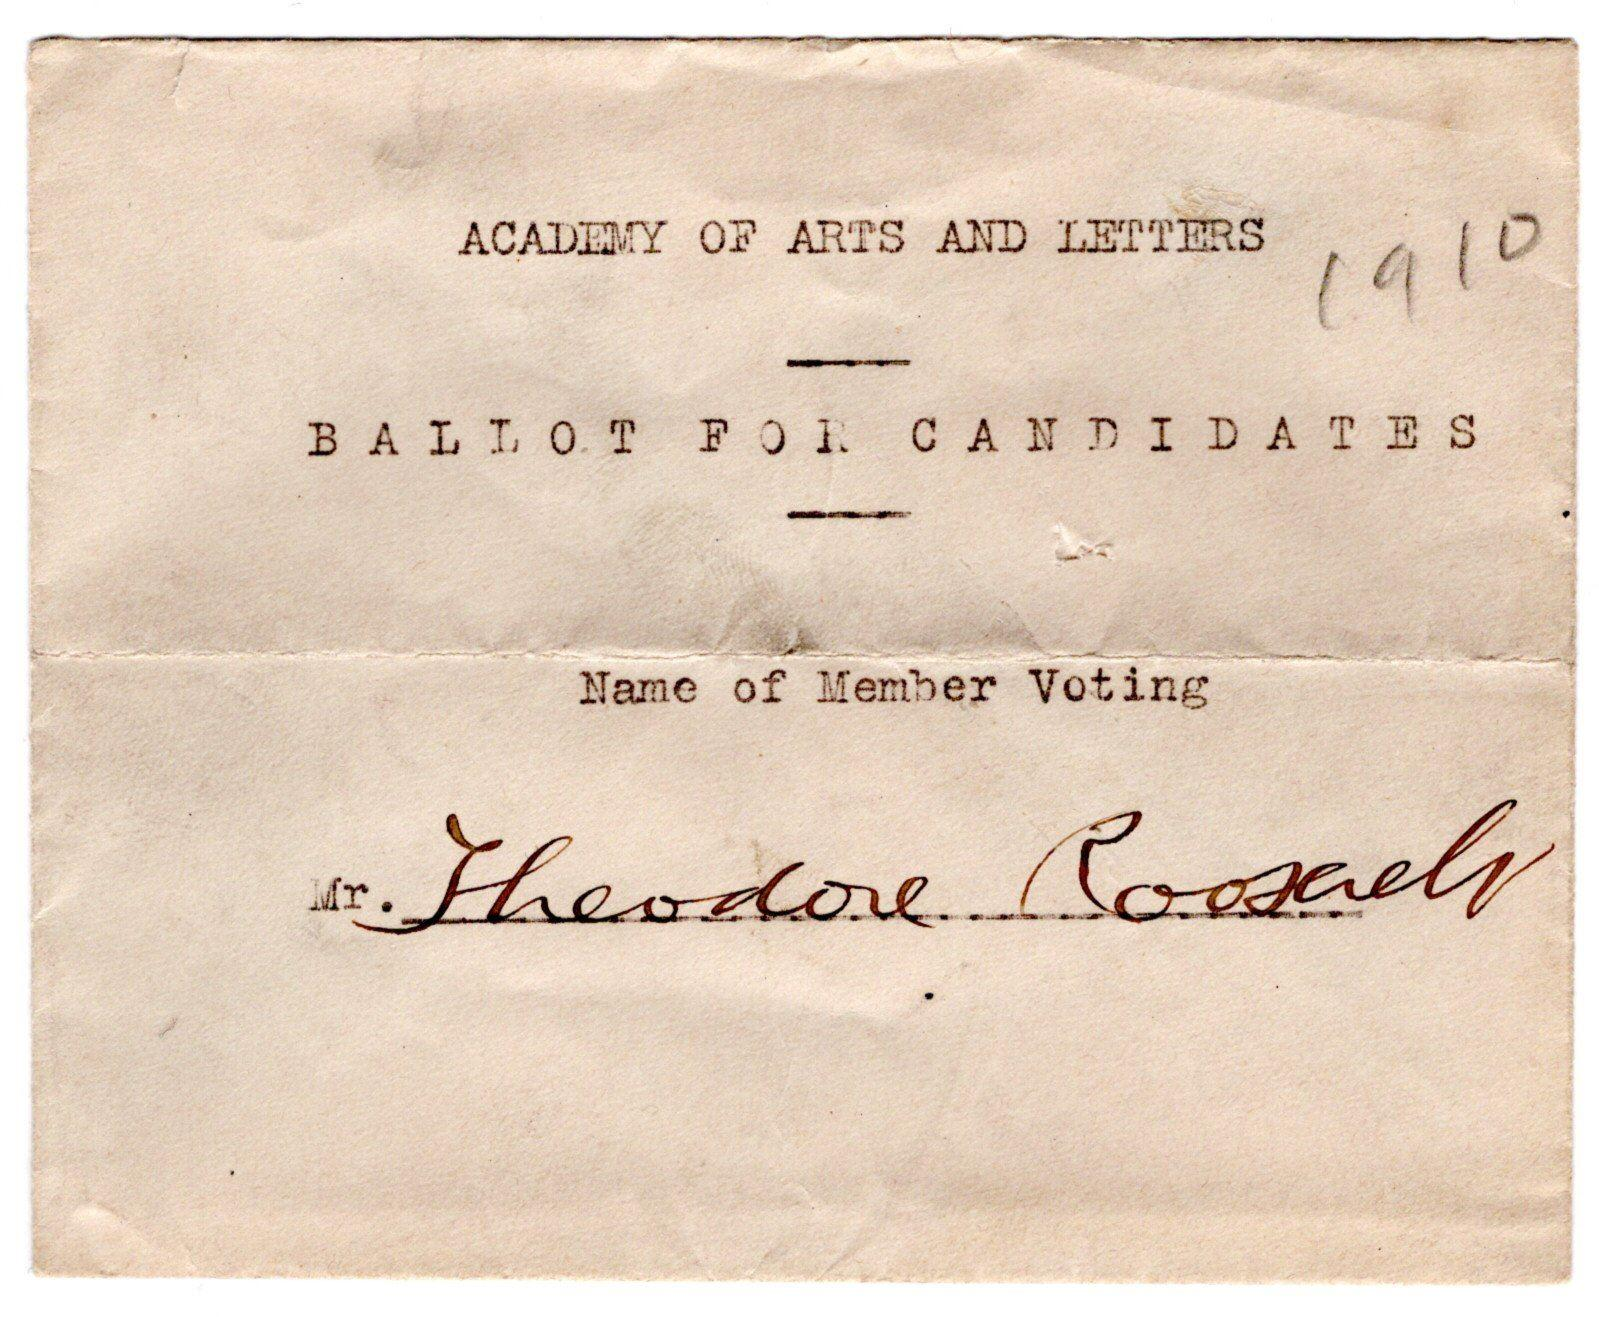 Theodore Roosevelt Declines Speaking Opportunity during 1884 Election and Votes for New Members of the Academy of Arts and Letters